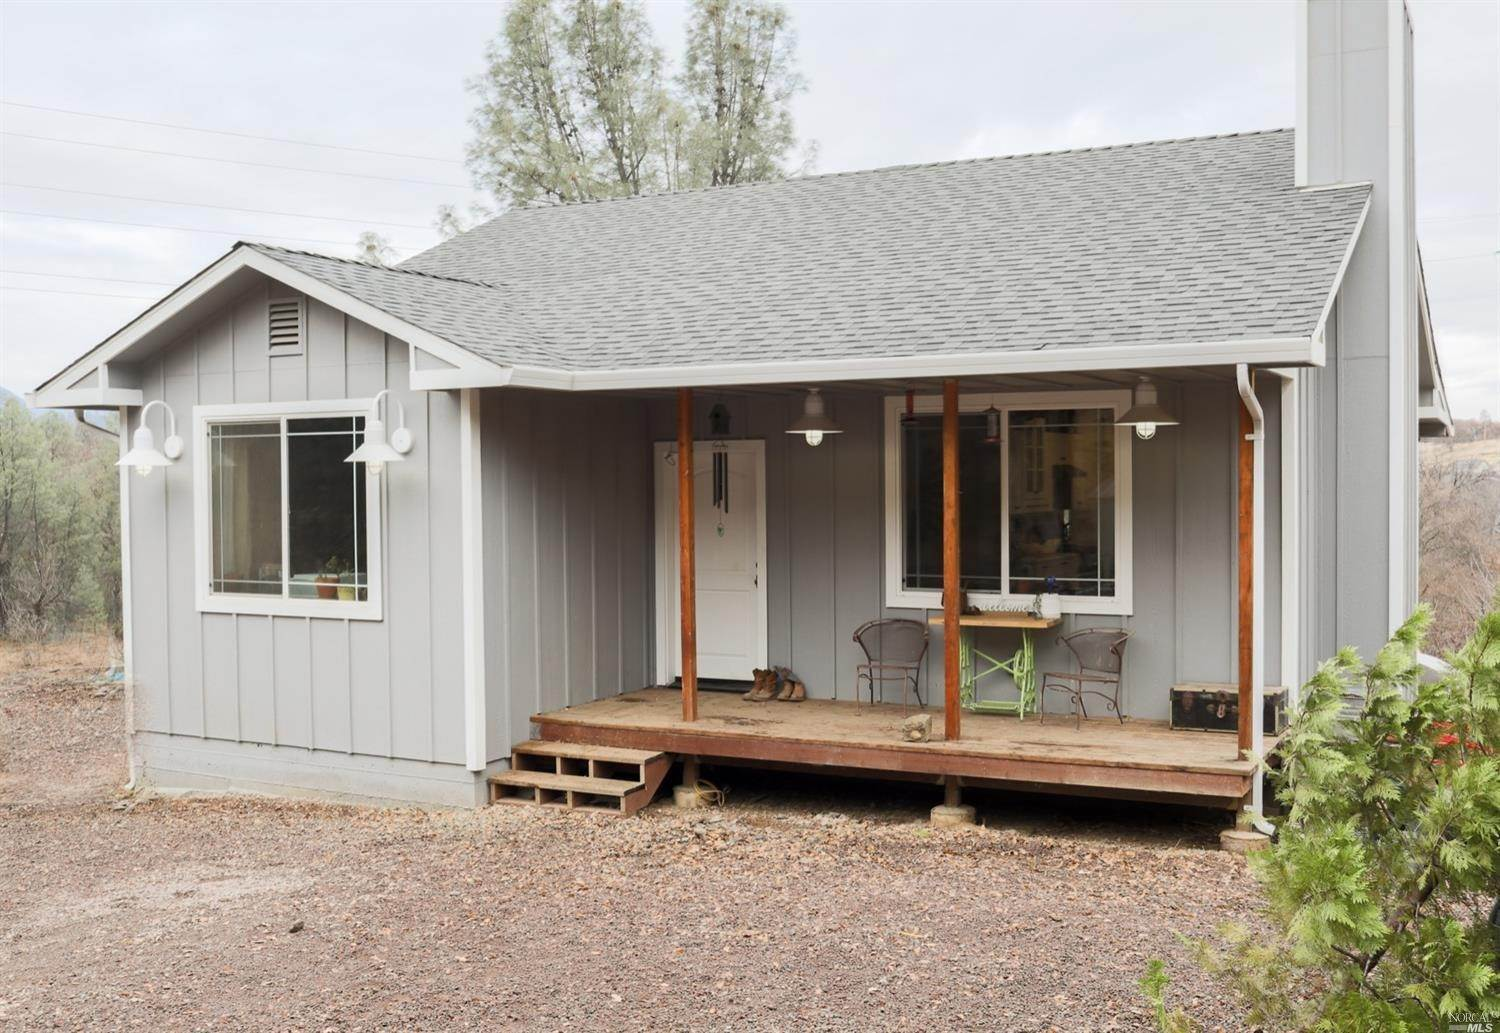 Single Family Homes のために 売買 アット 10165 Bell Avenue, Lower Lake Lower Lake, カリフォルニア 95457 アメリカ